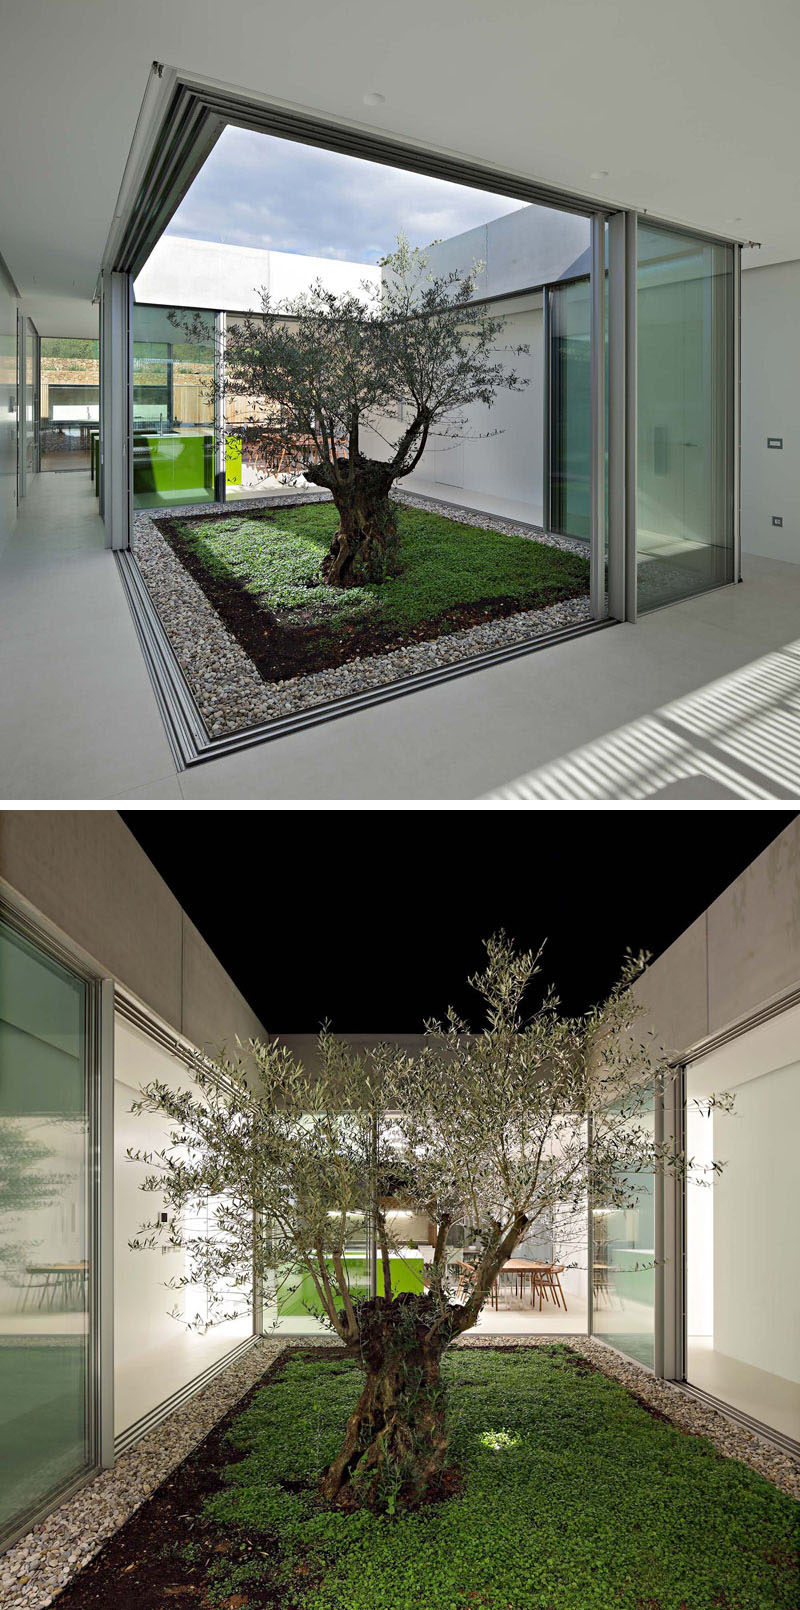 This modern home has a glass atrium with a single olive tree, that's the heart of the house. All of the different living areas of the home surround the atrium and it's a place where the boundary between the interior and exterior disappears. #Atrium #InteriorAtrium #ModernArchitecture